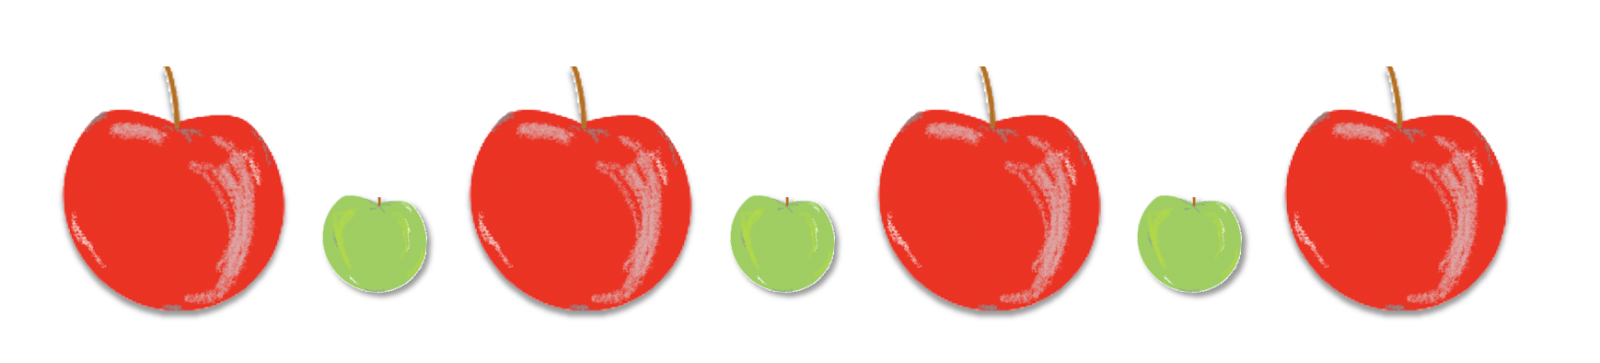 7 apples in a row. First, a big red one. Next, a small green one. Then a big red one. Next, a small green one. Then a big red one. Next, a small green one. Last, a big red one.